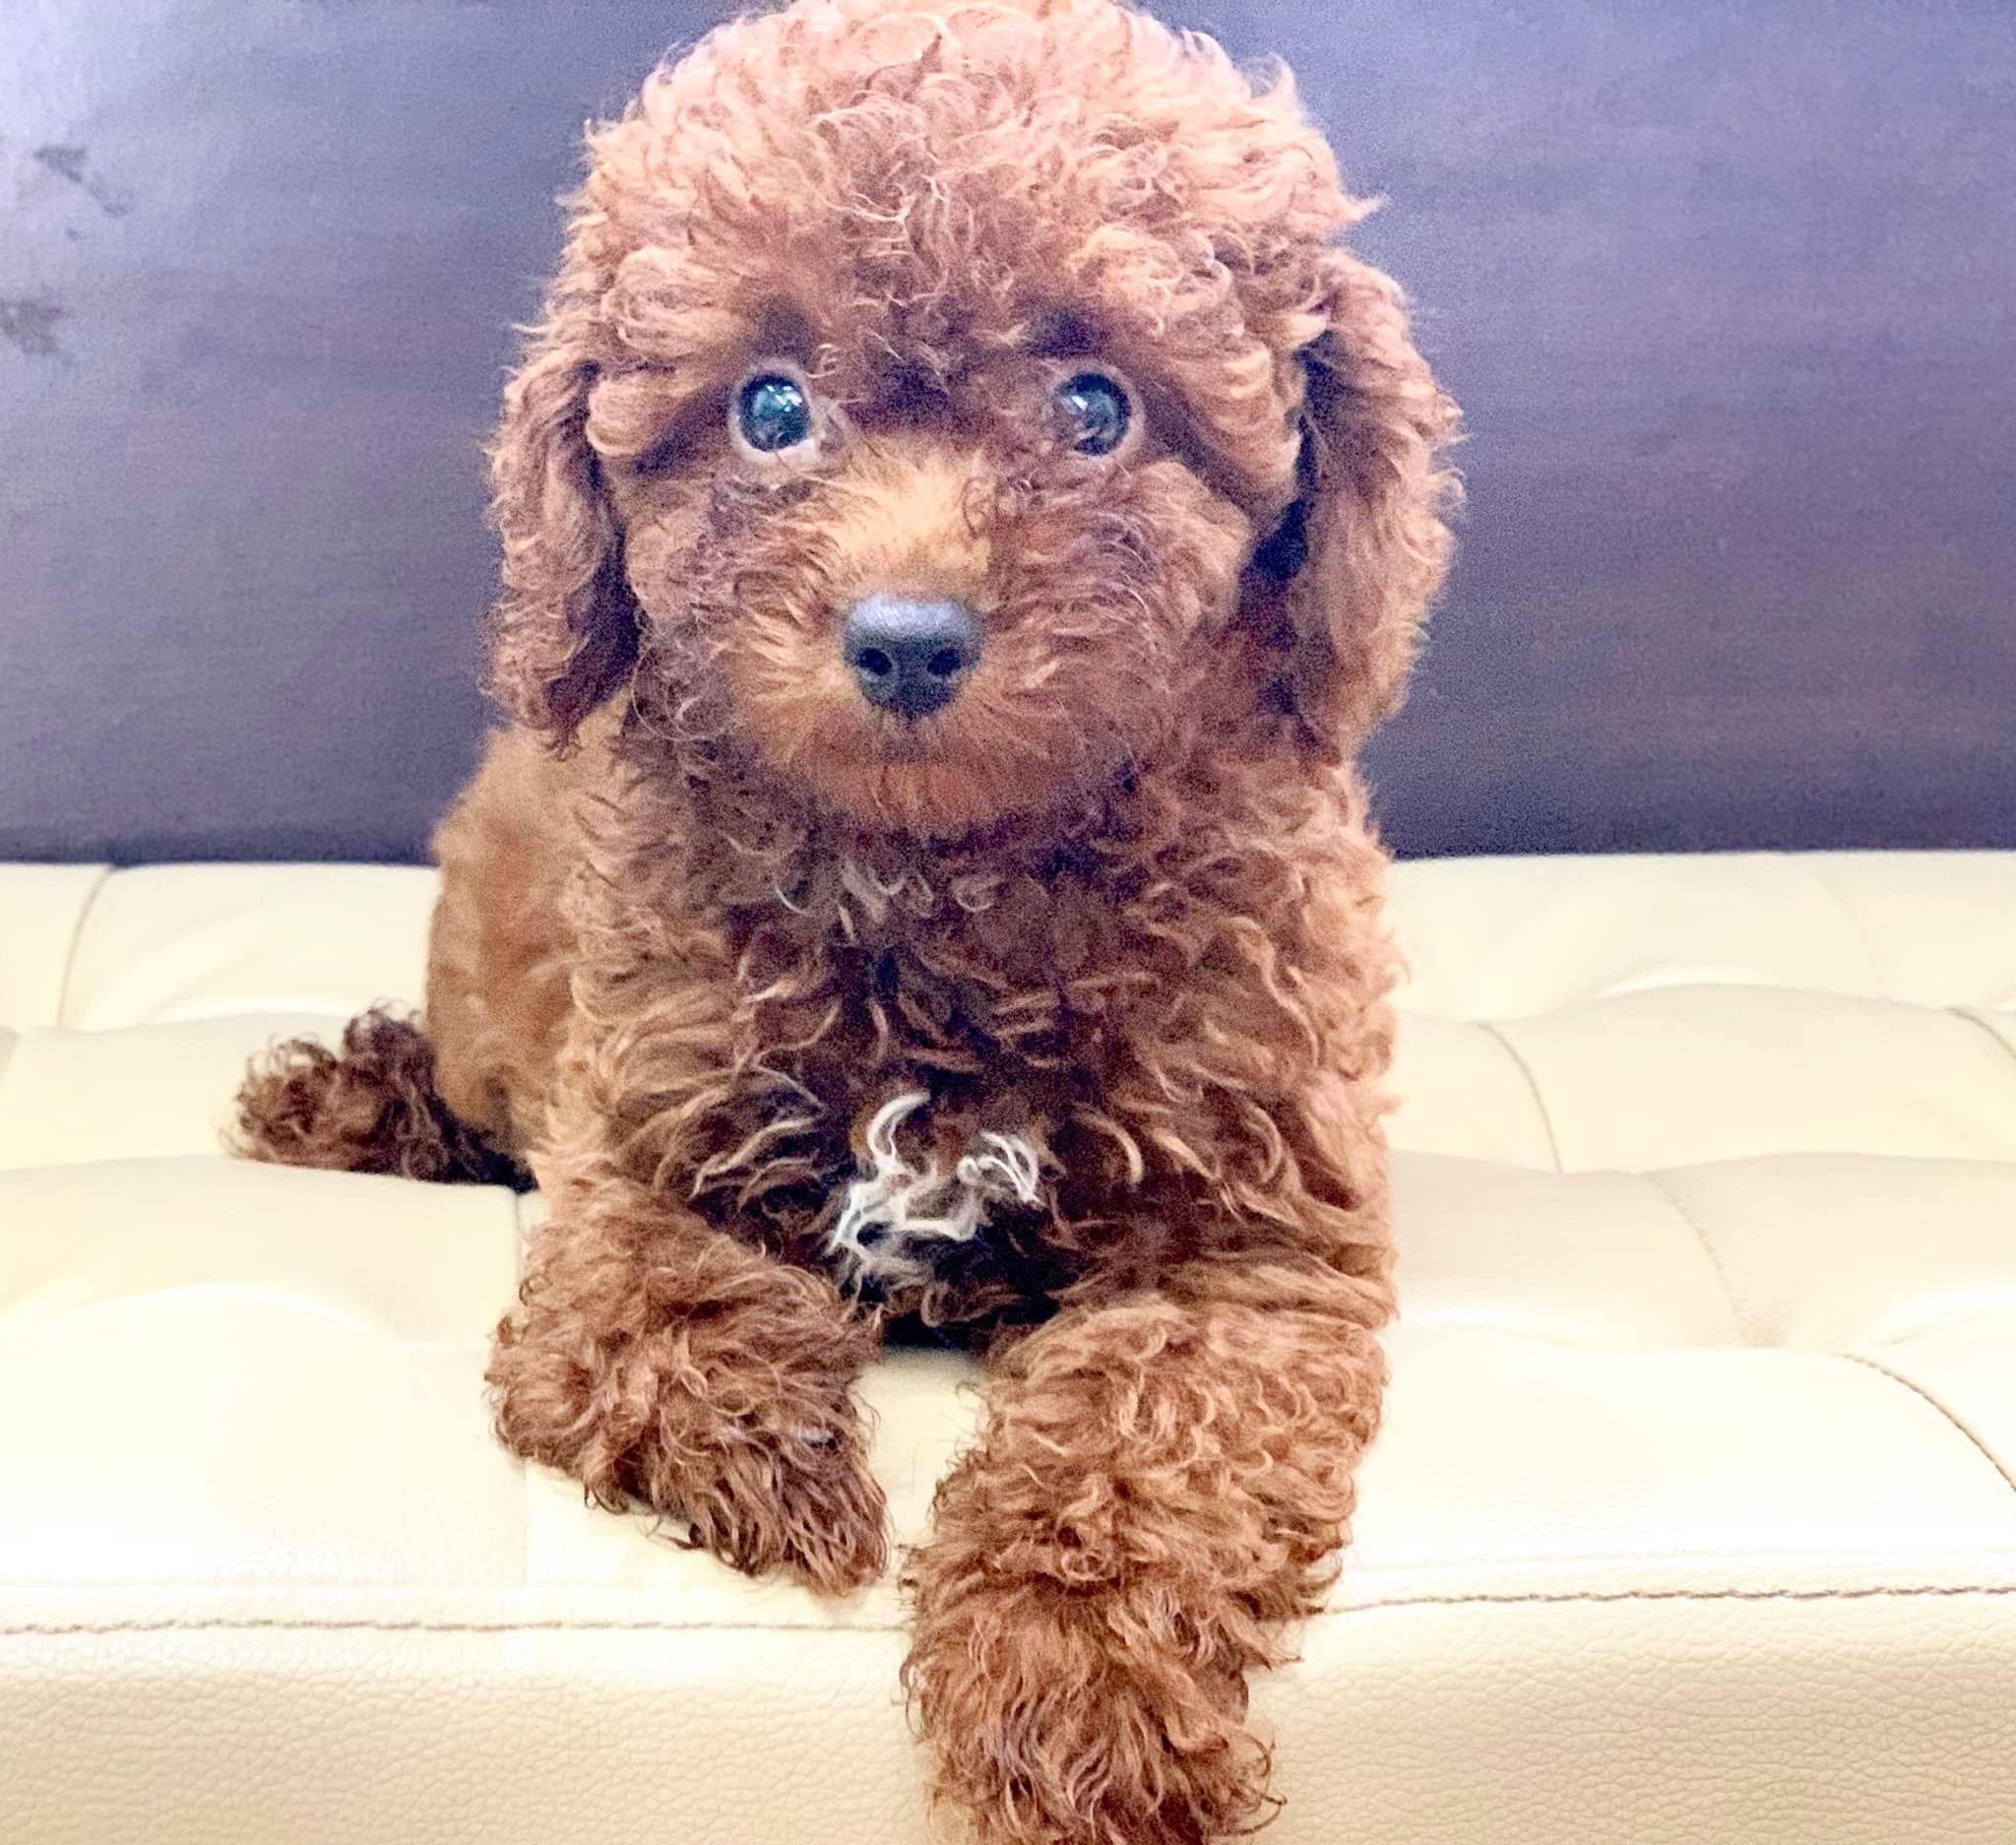 Toy Poodle Puppies For Sale Poodle Puppies Sale Toy In 2020 Poodle Puppies For Sale Poodle Puppy Puppies For Sale